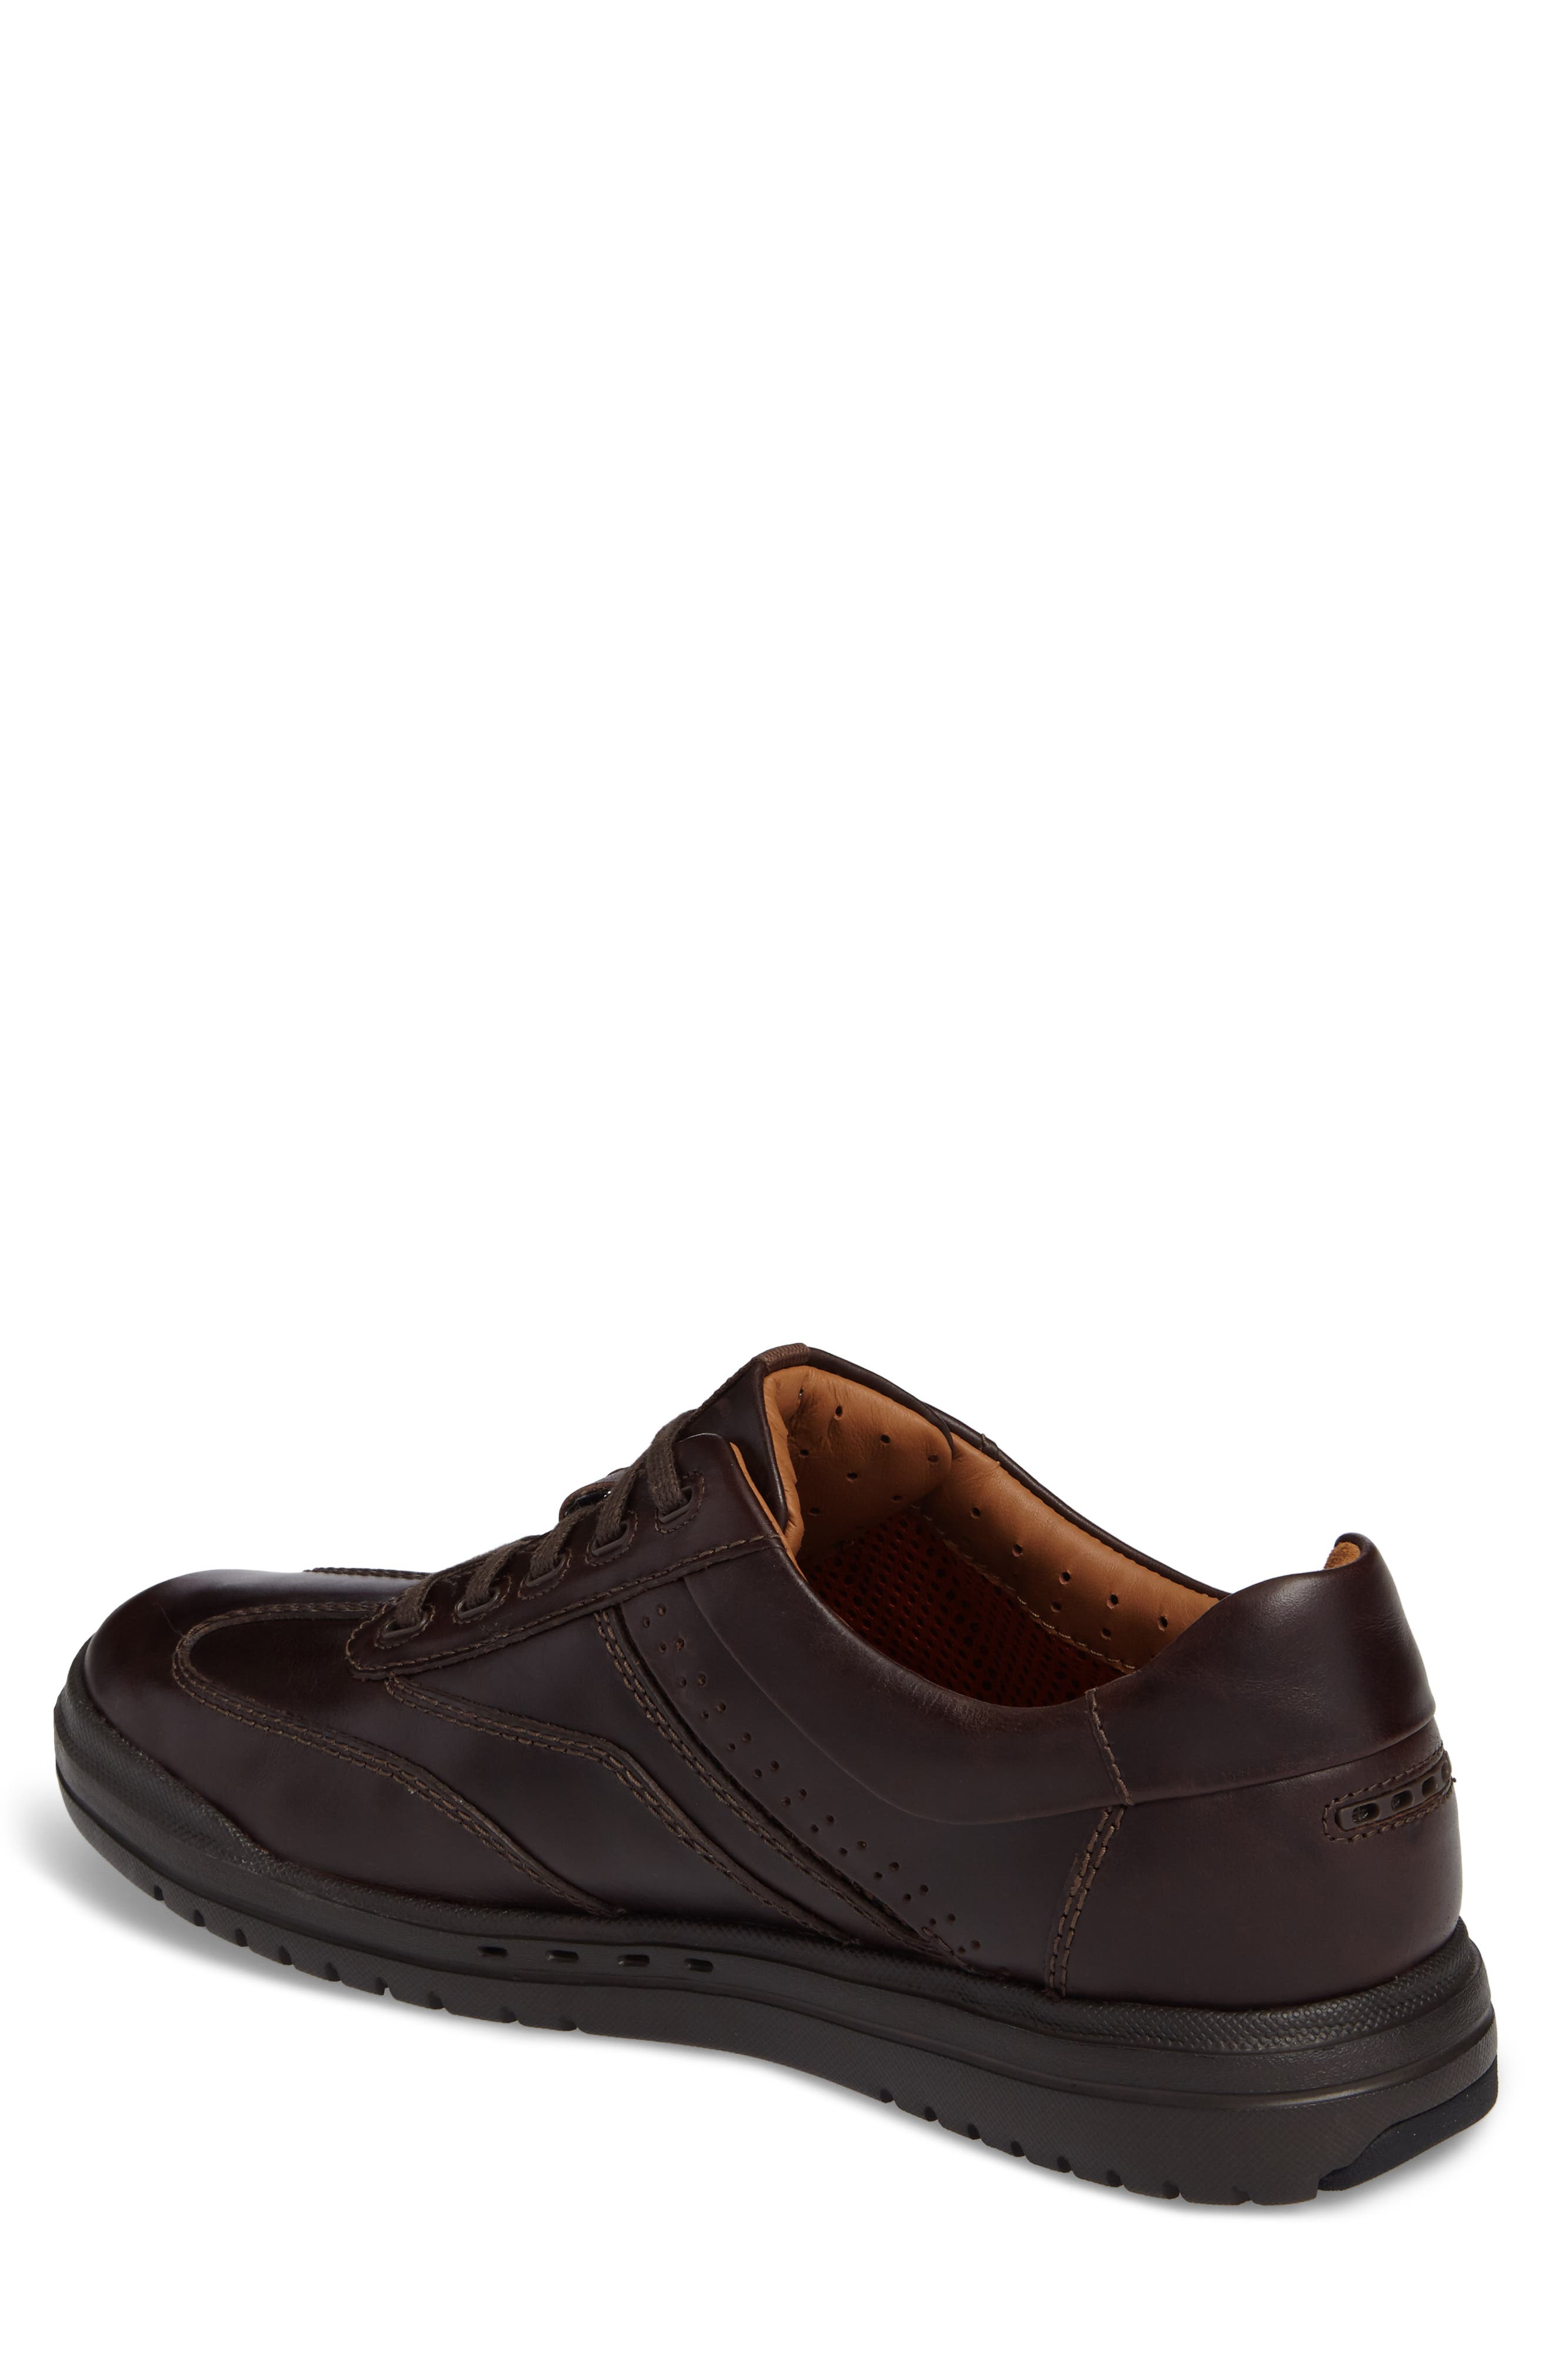 Un.Rhombus Fly Sneaker,                             Alternate thumbnail 2, color,                             Brown Leather